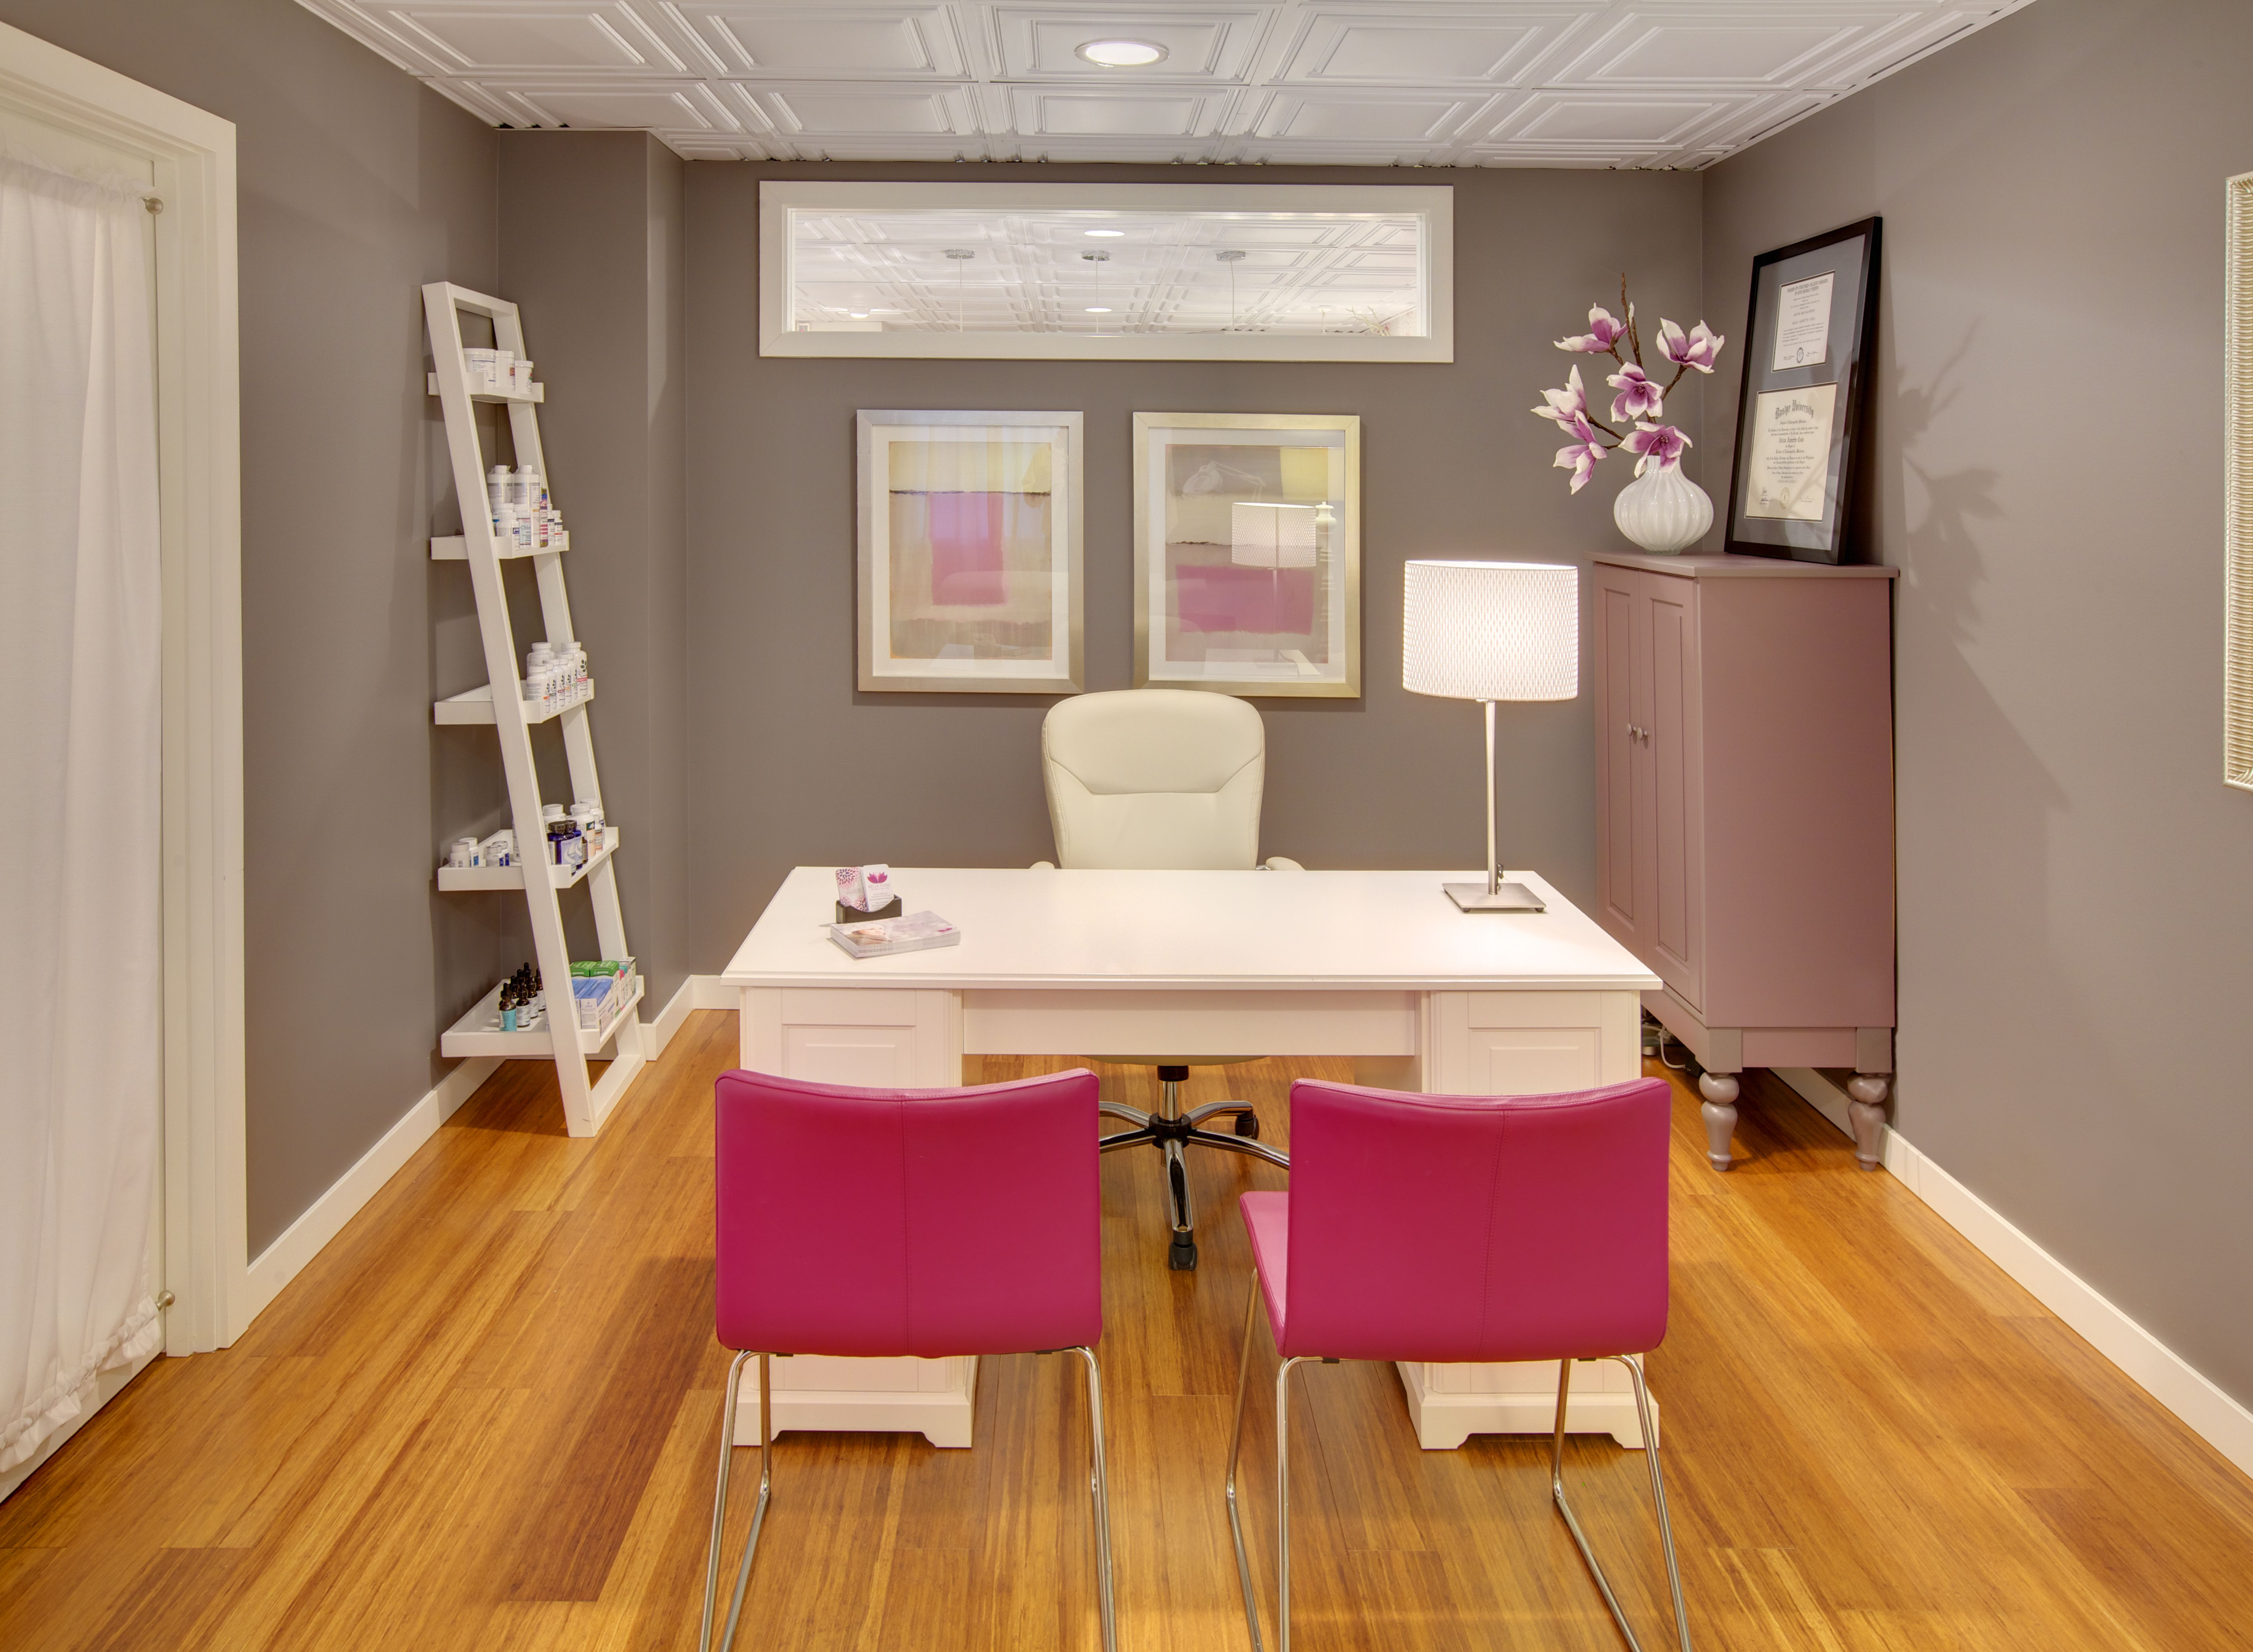 Bella Fiore Spa. The Naturopathic Doctor's office was painted the most subdued color in our palette, Granite by Benjamin Moore, but pinks and purples were brought in as accents. #grayroom #whitedesk #ikeafurniture #interiordesign #seattle